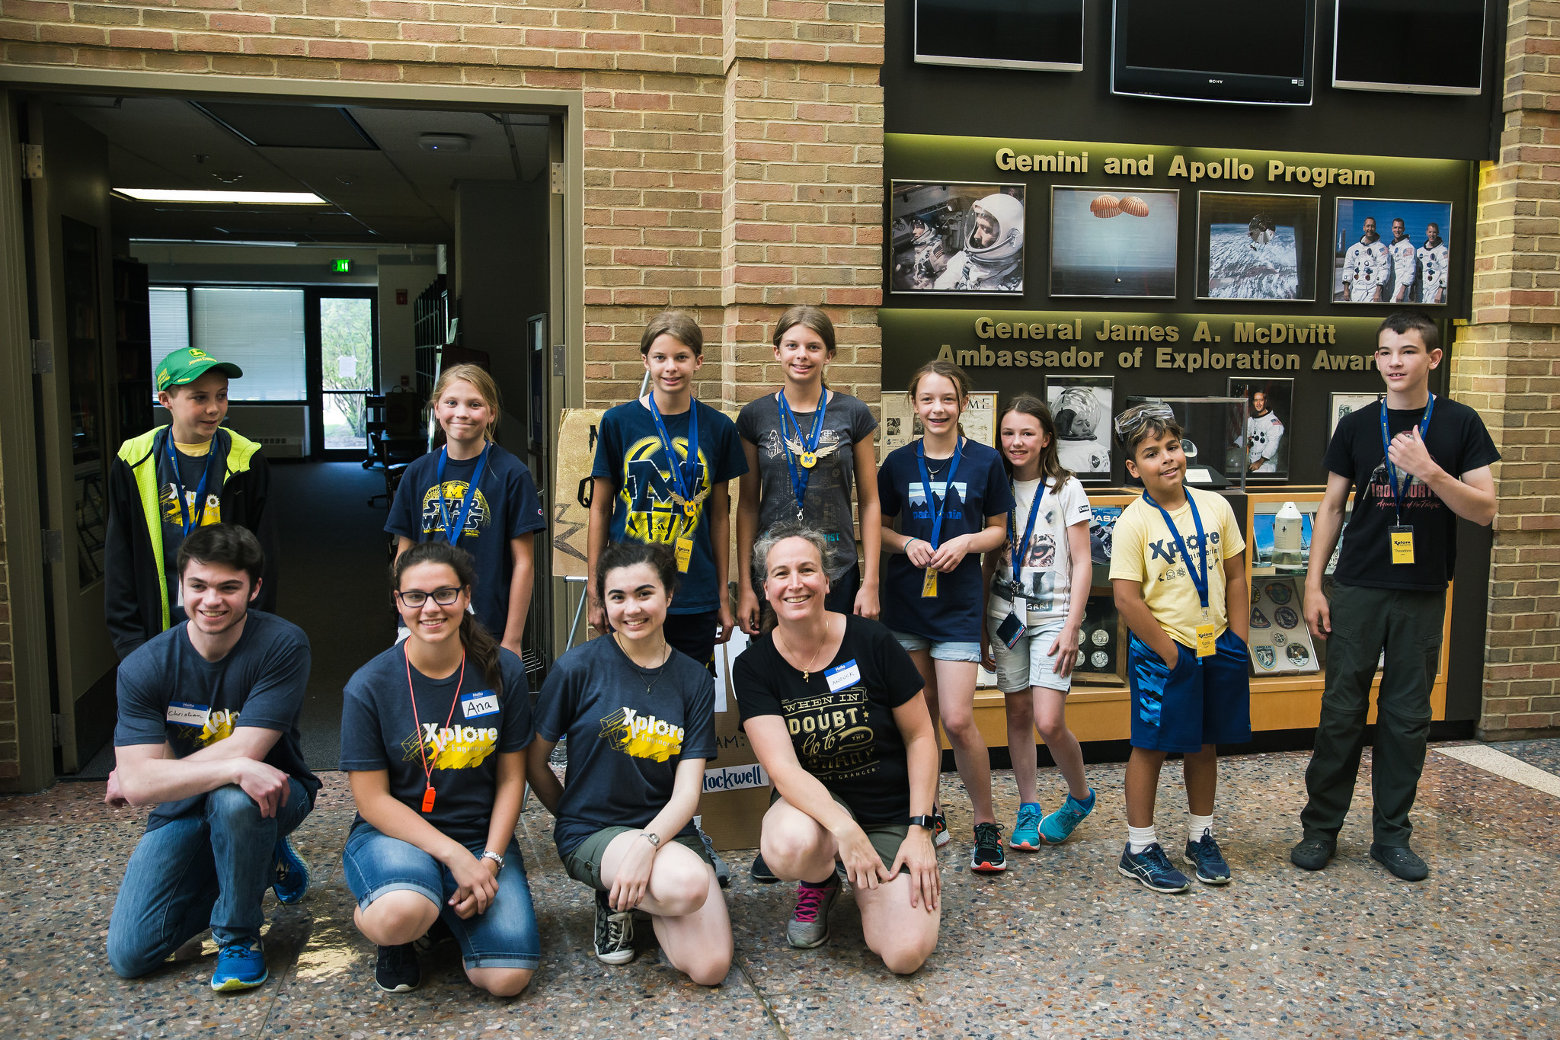 Ana Timoficiuc (bottom, second from left), Sabrina Olson (bottom, third from left), and Professor Girard (bottom, fourth from left) pose for a group photo with students participating in Quidditch tournament.